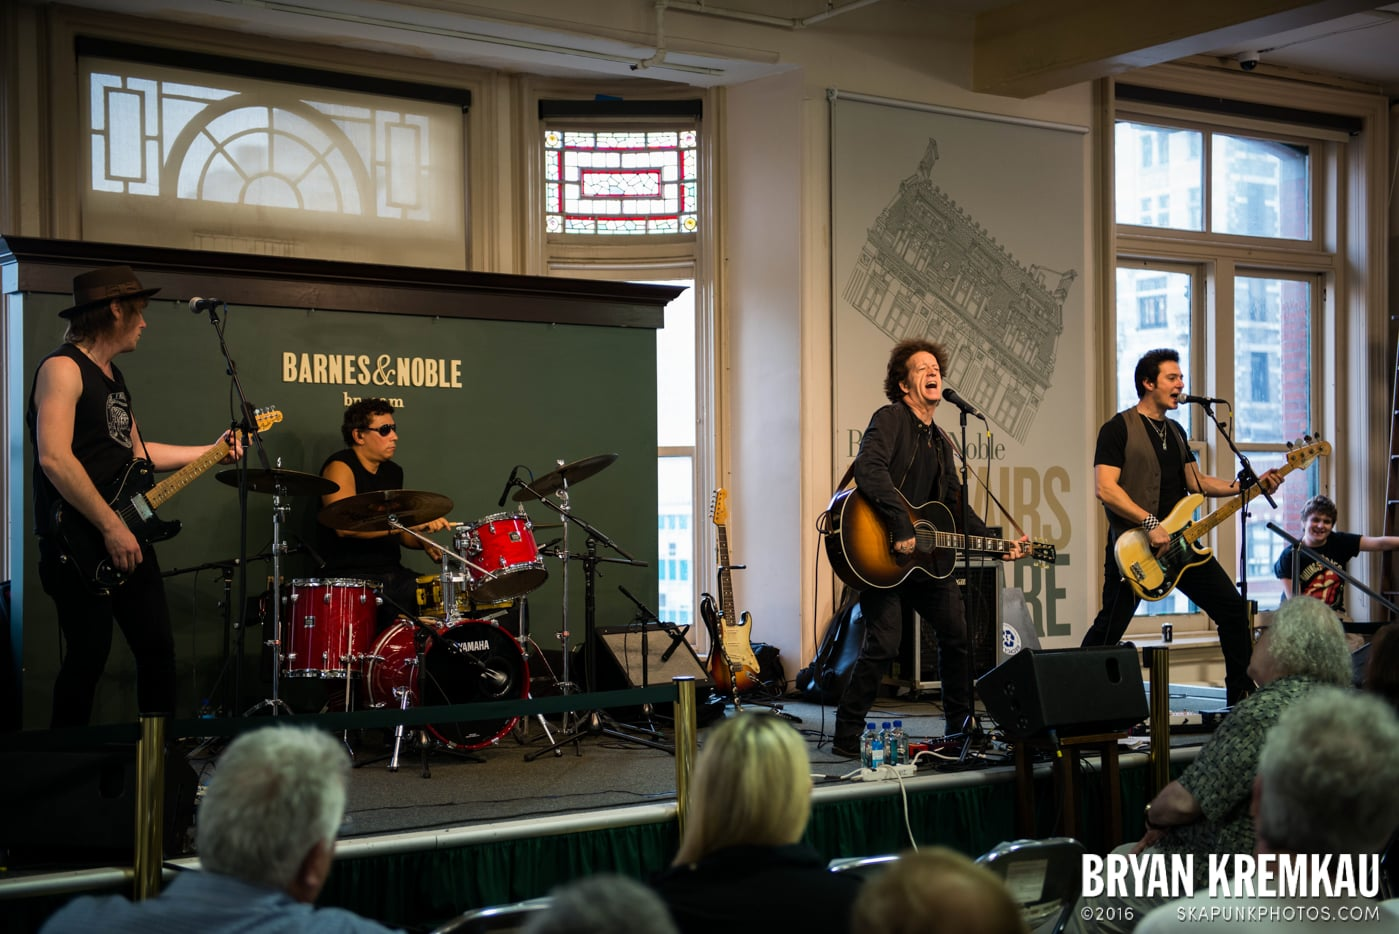 Willie Nile @ Barnes & Noble Union Square, NYC - June 25th 2013 (22)